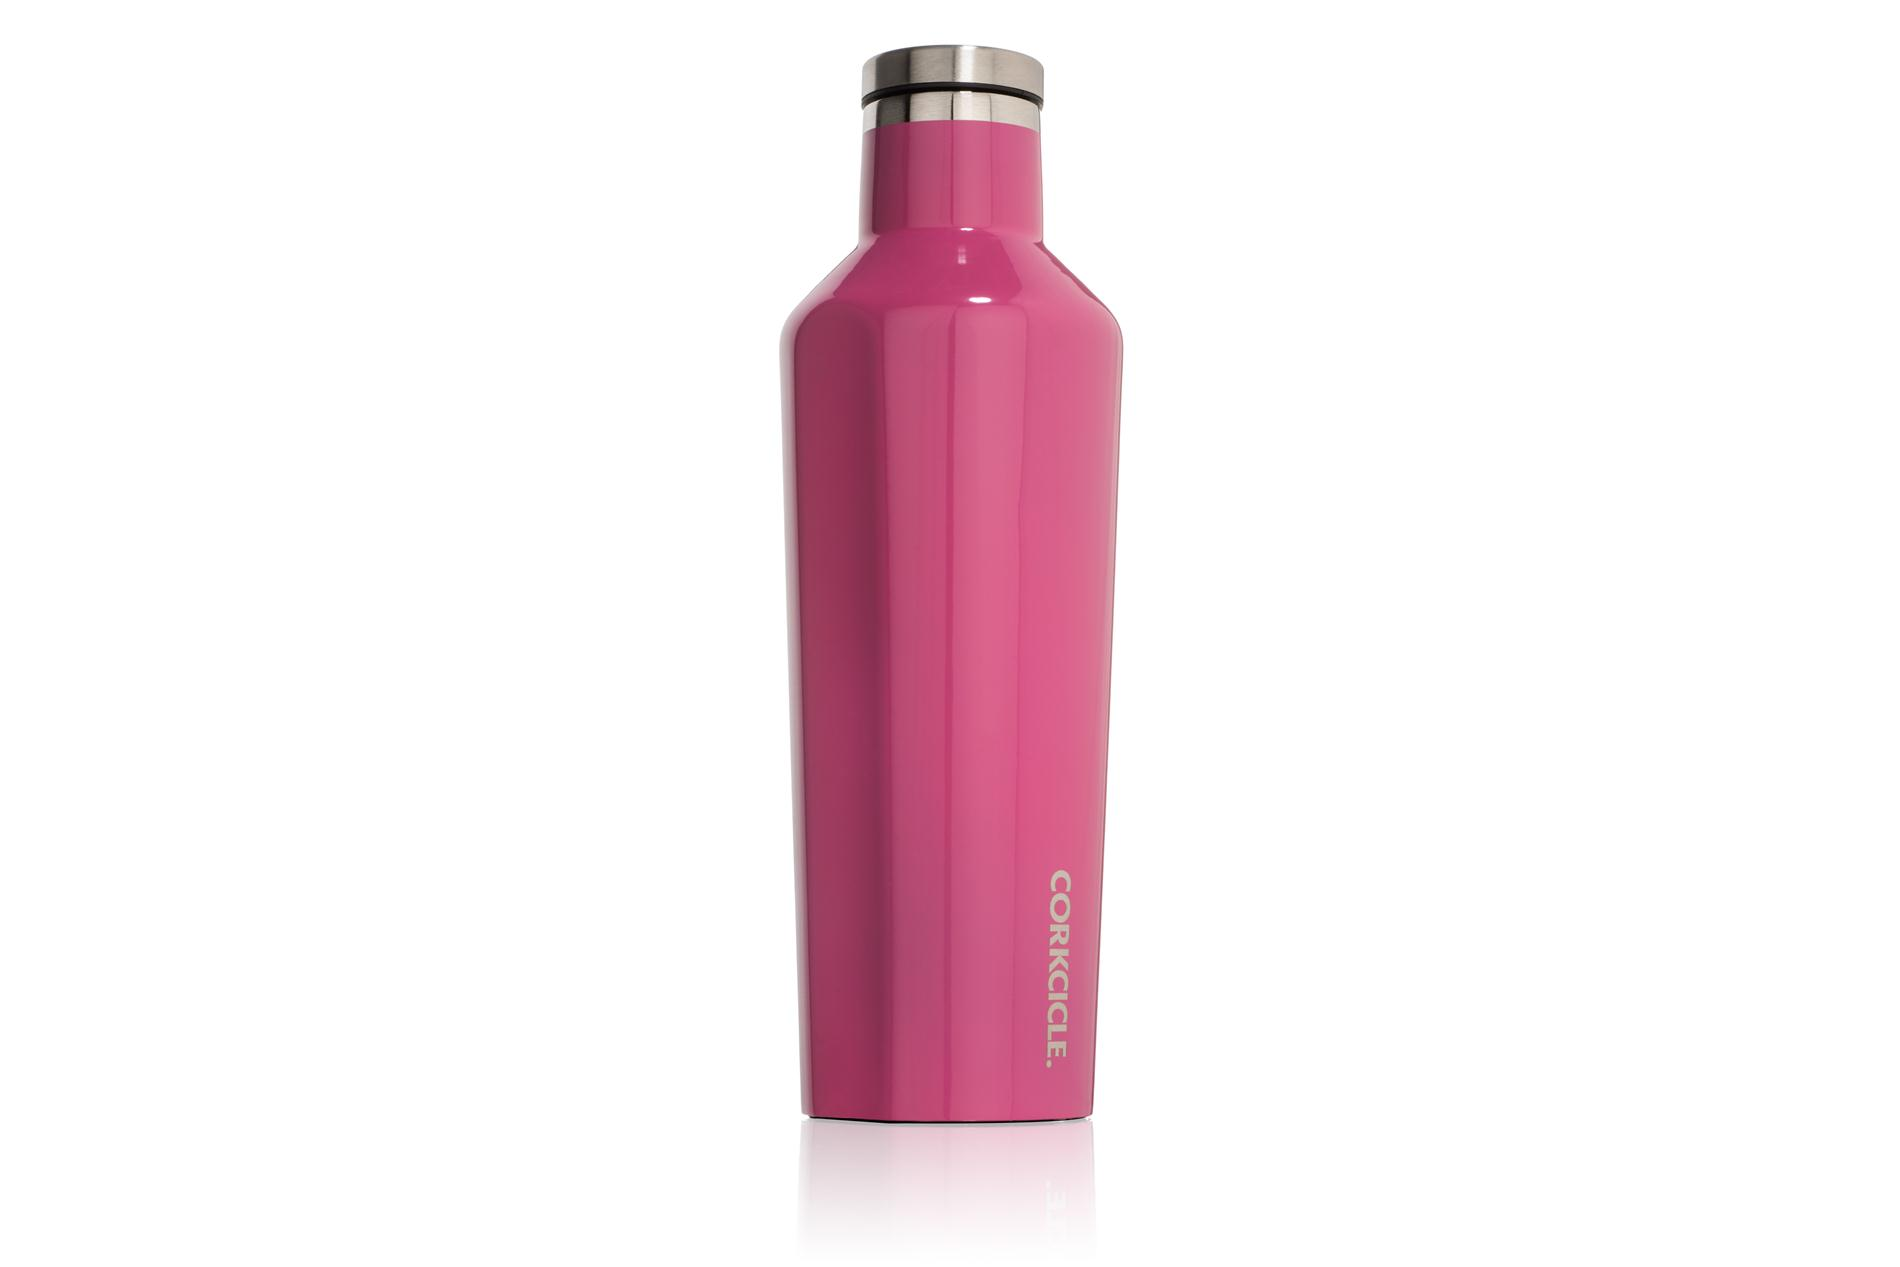 Corkcicle Trinkflasche / Thermo Isolierflasche Gloss Pink 475 ml Gloss